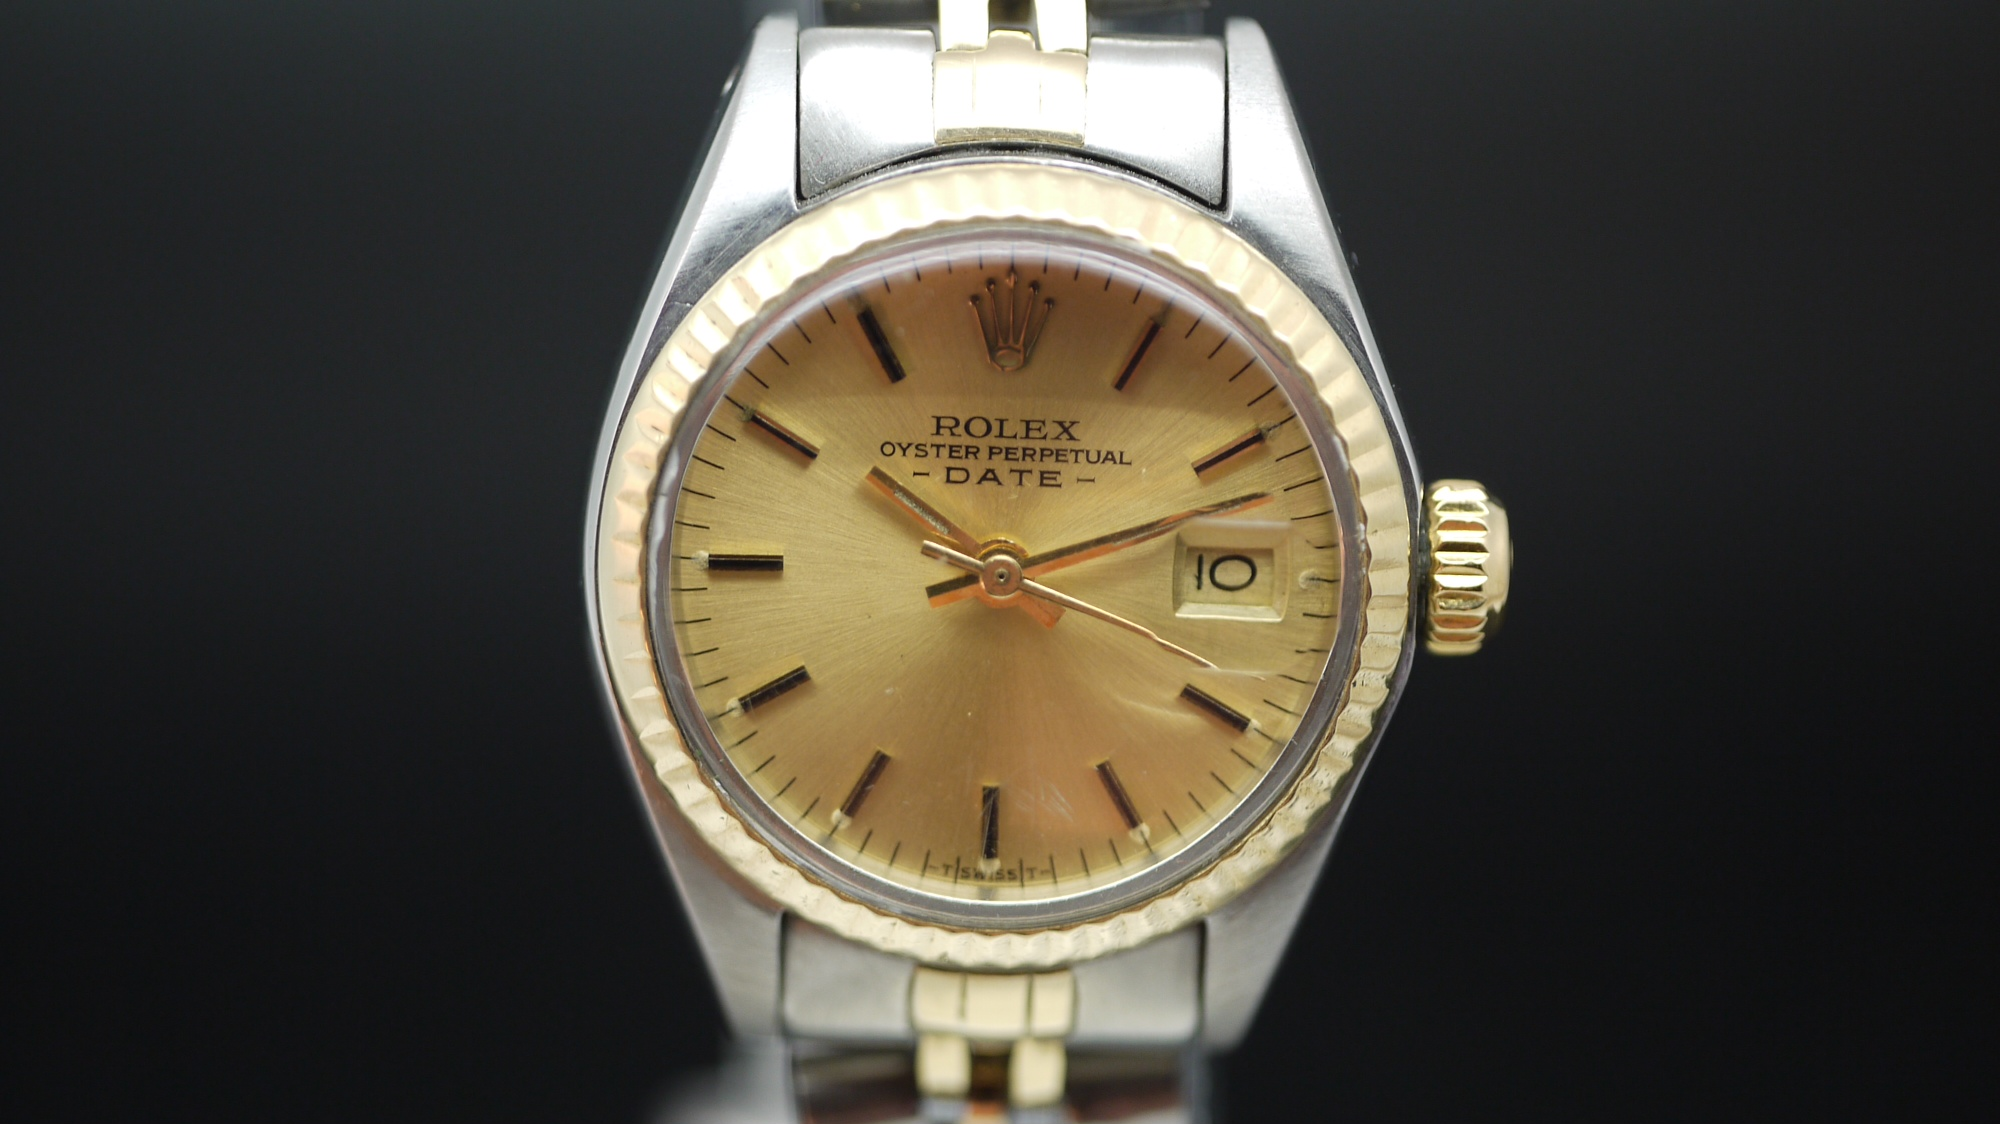 ab7aa1a2be1 Ladies Rolex Oyster Perpetual Date Ref 6917 | James Ross